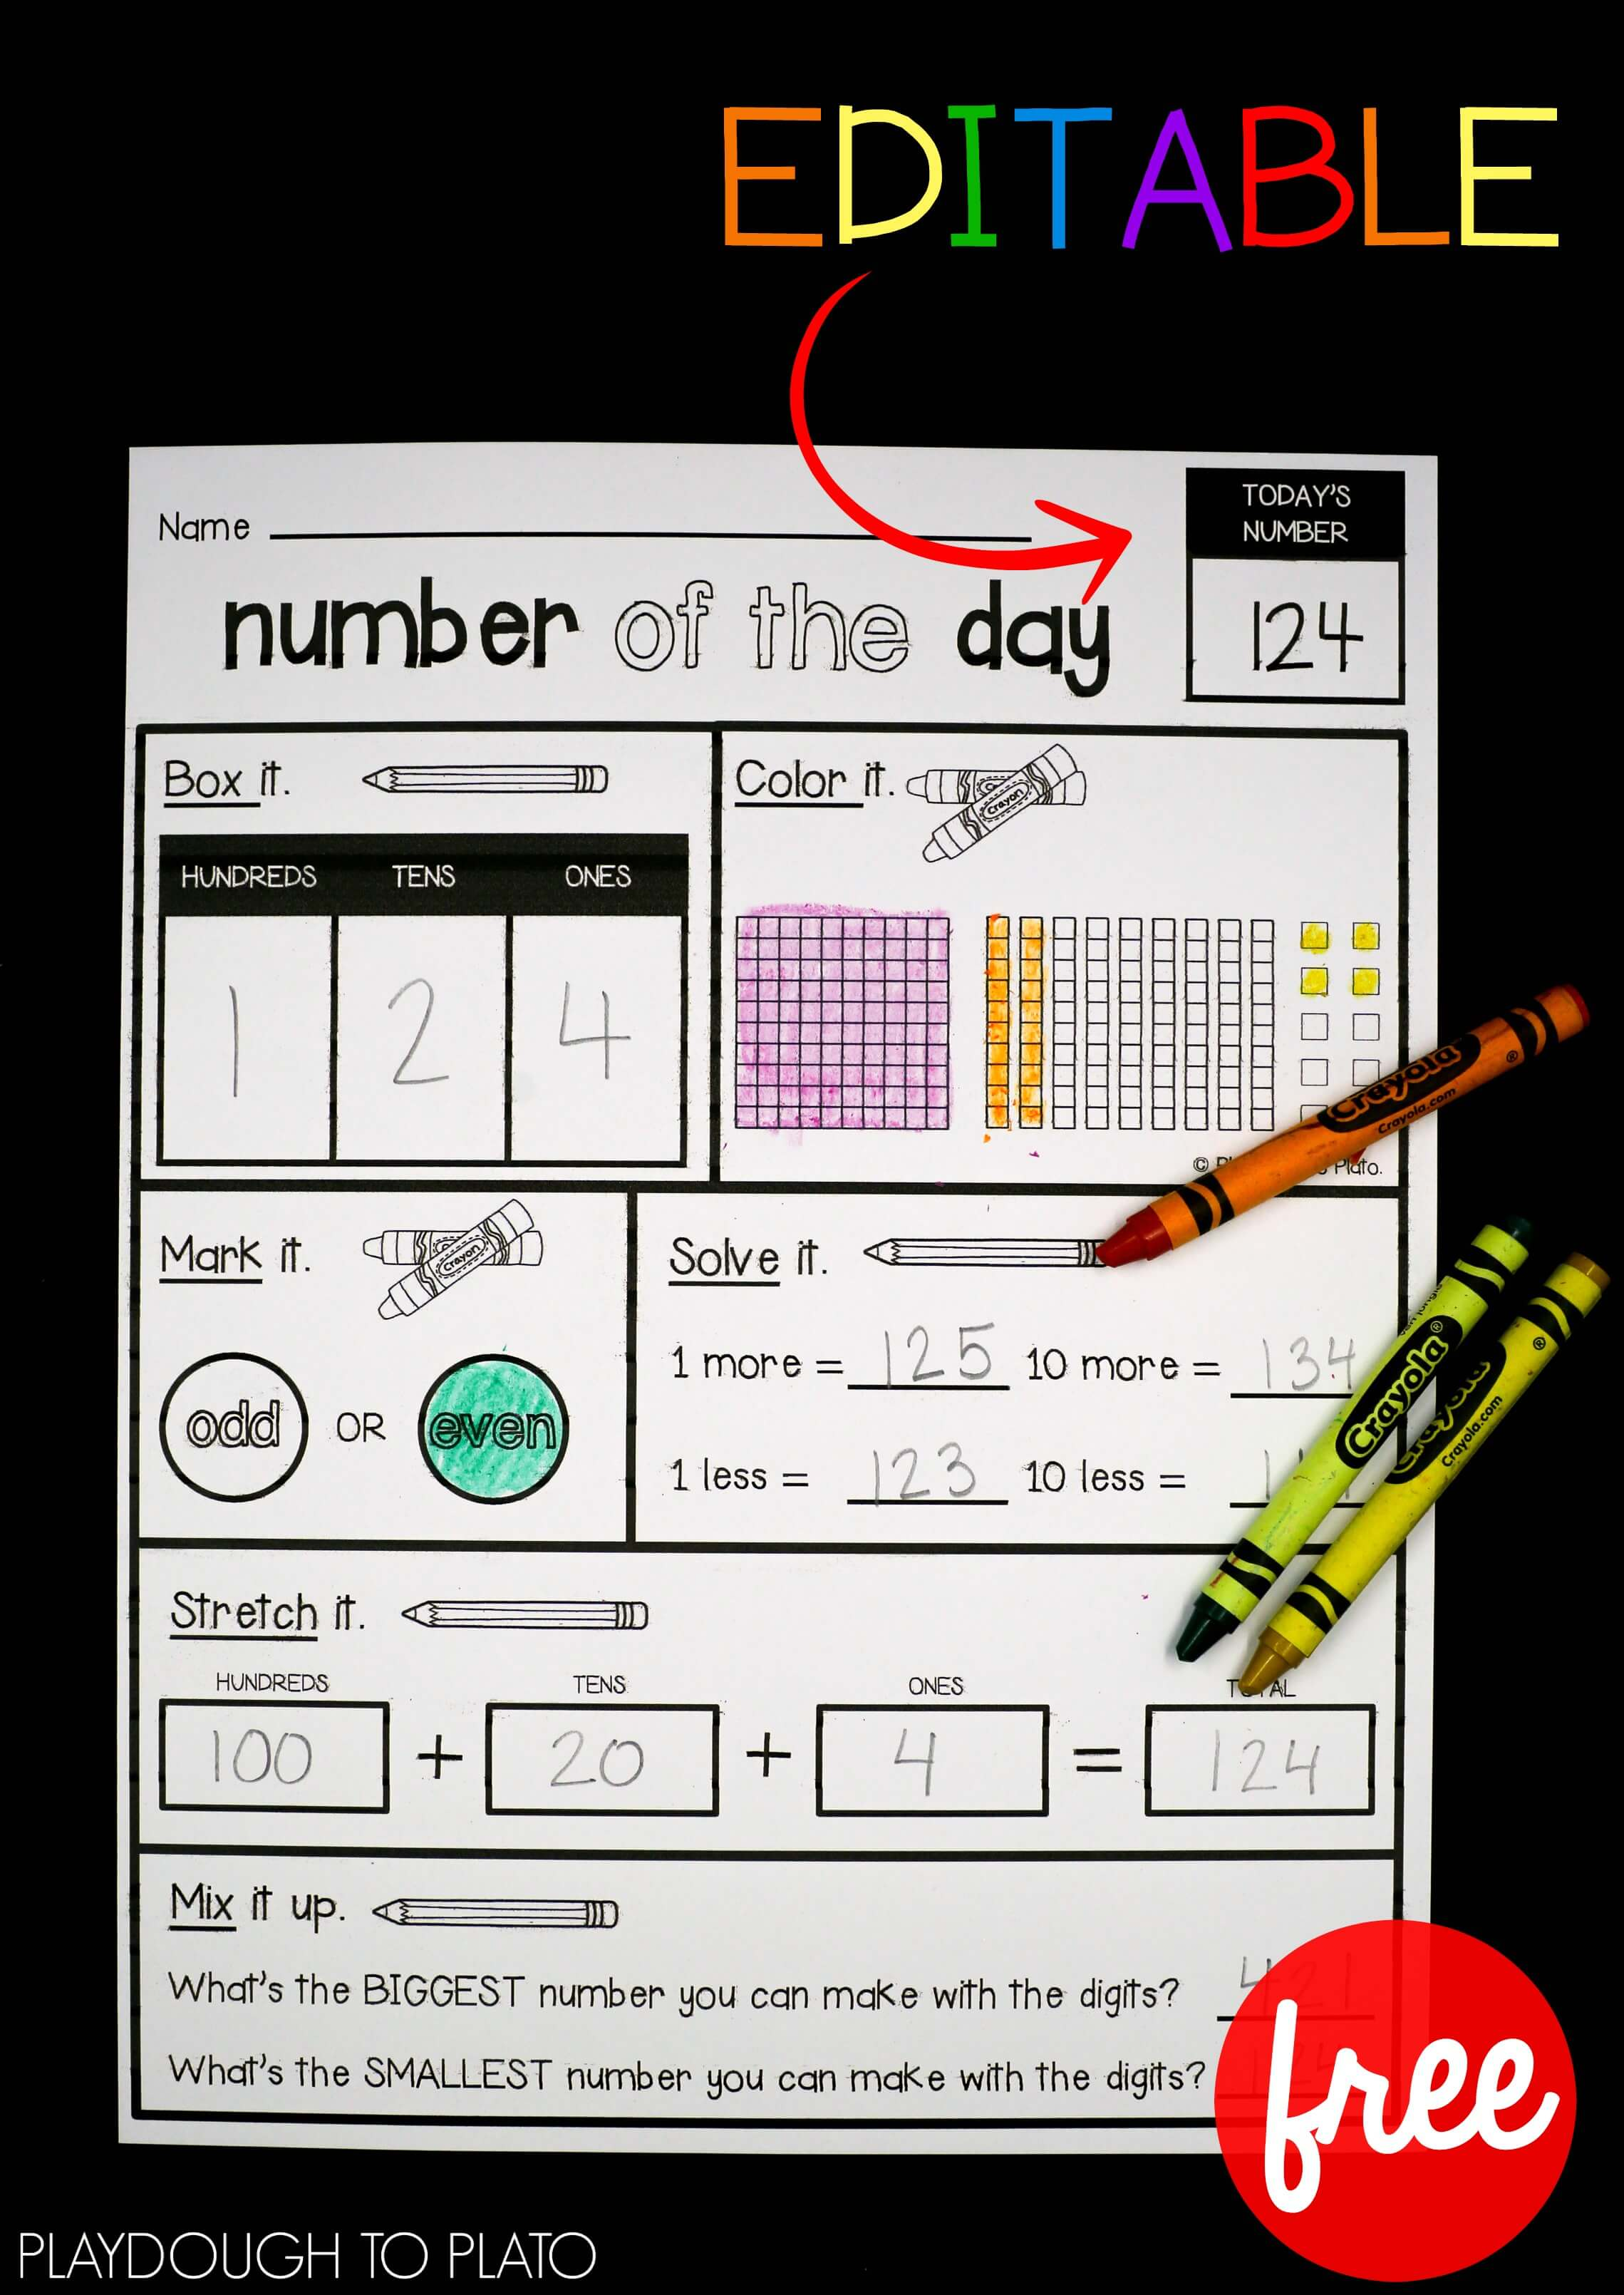 EDITABLE Number of the Day Sheet   Playdough To Plato